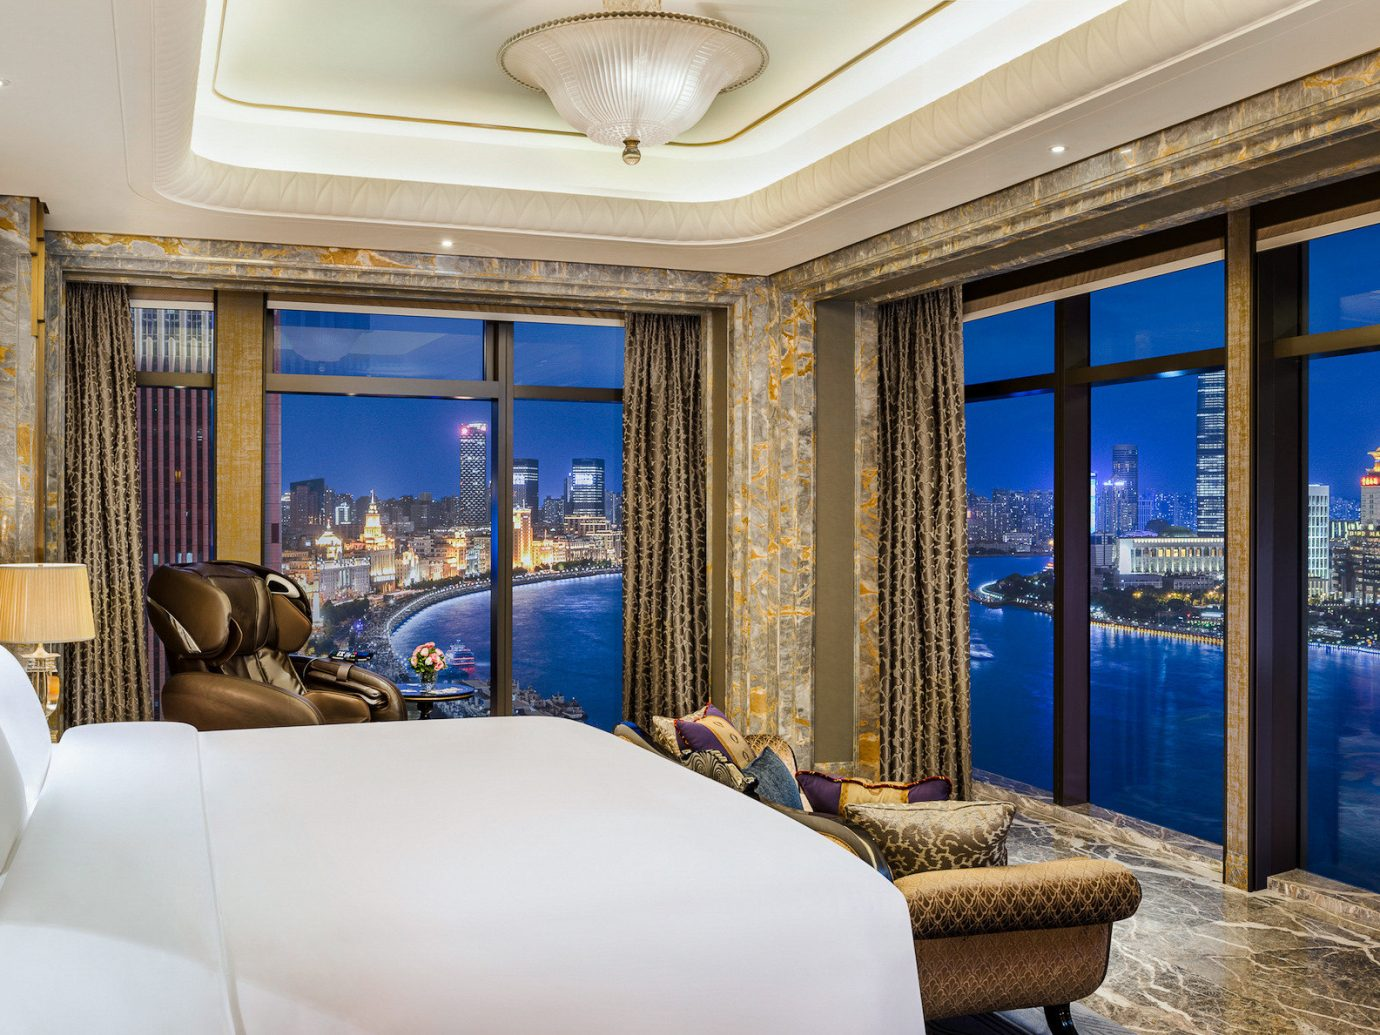 Boutique Hotels Luxury Travel indoor window room interior design real estate wall Suite estate scene home ceiling hotel penthouse apartment Bedroom apartment furniture overlooking